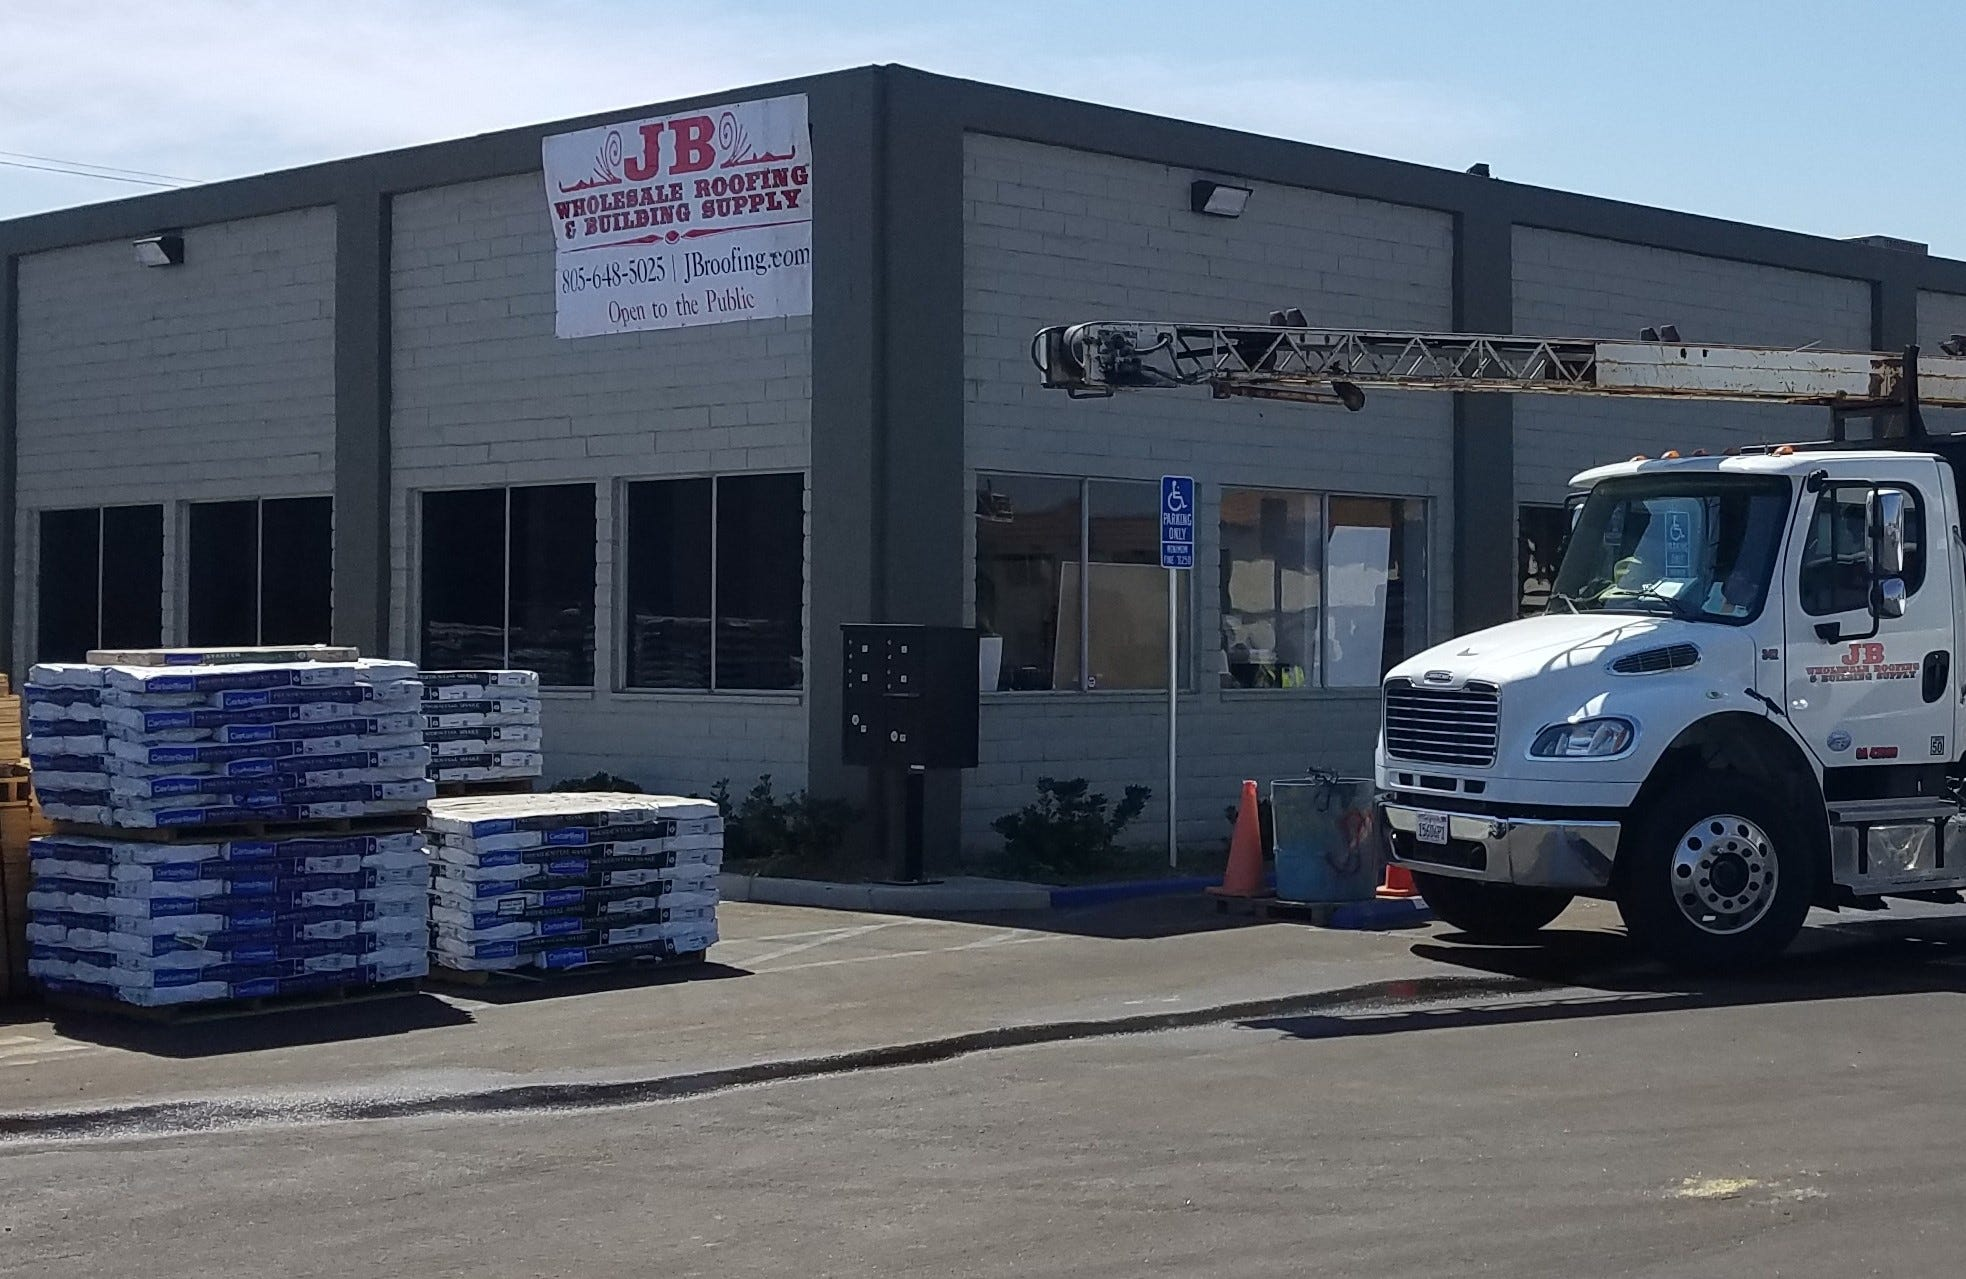 Jb Wholesale Roofing And Building Supplies Moves